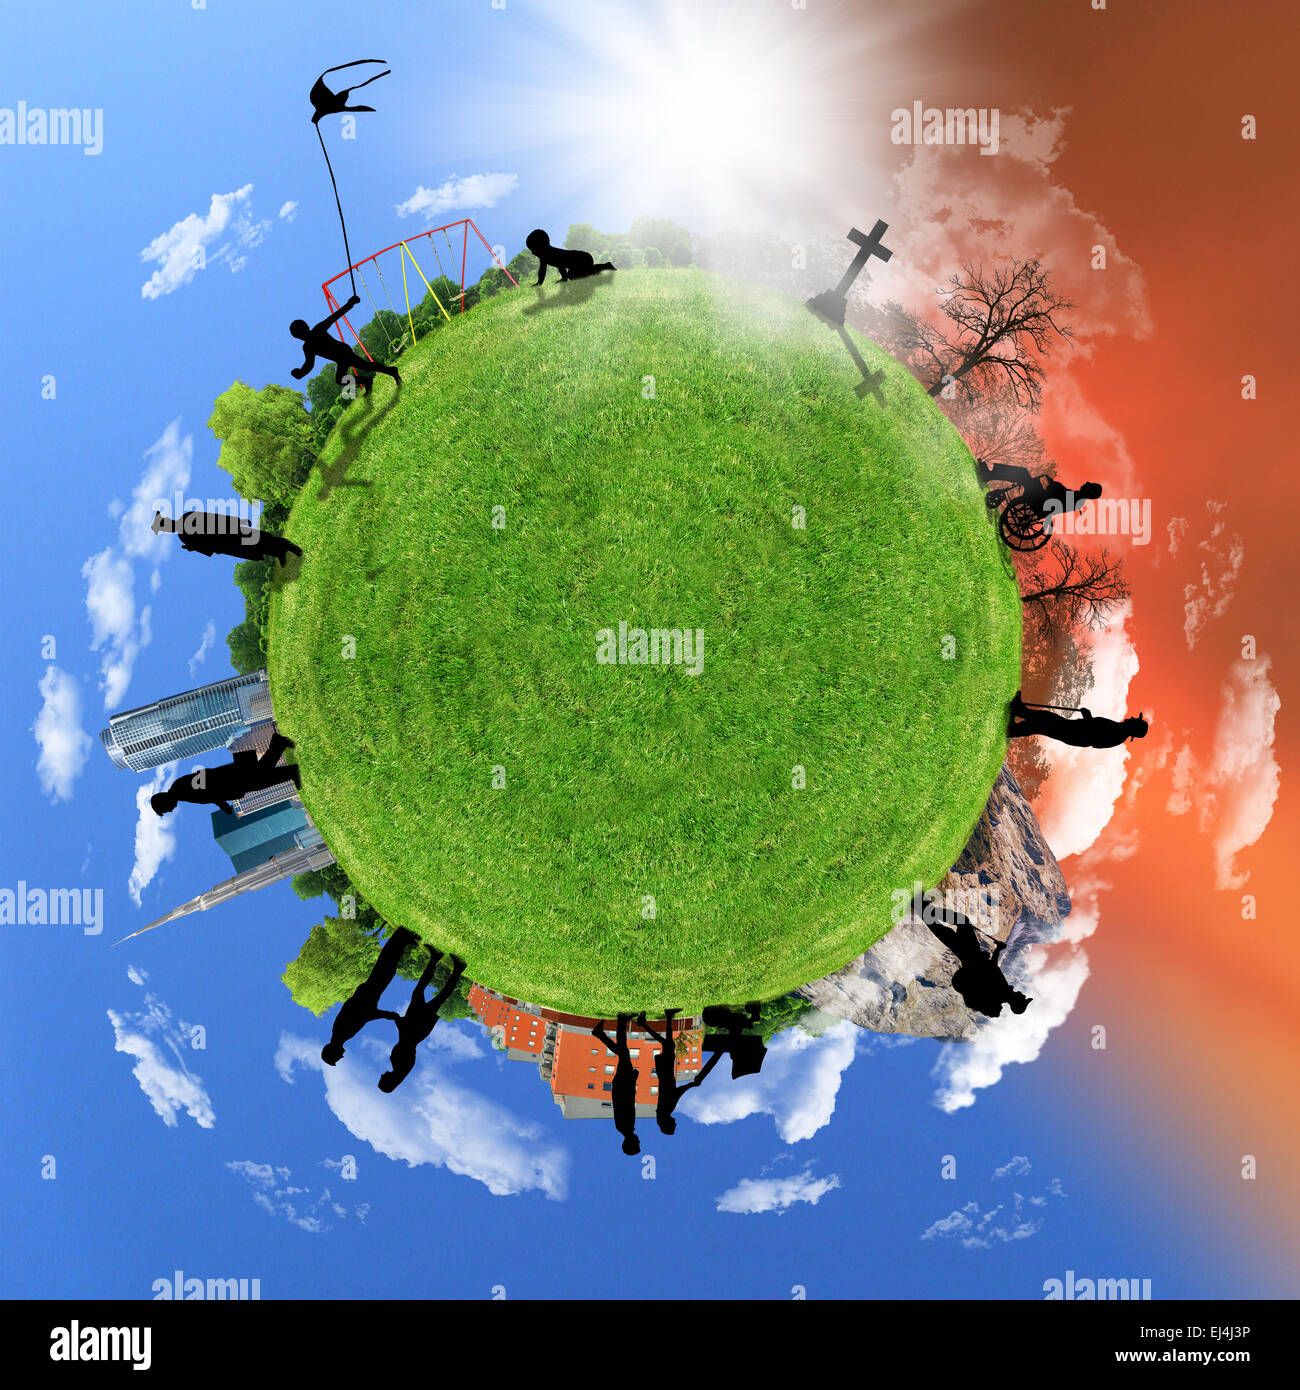 Human life circle, concept on a globe, aging. - Stock Image